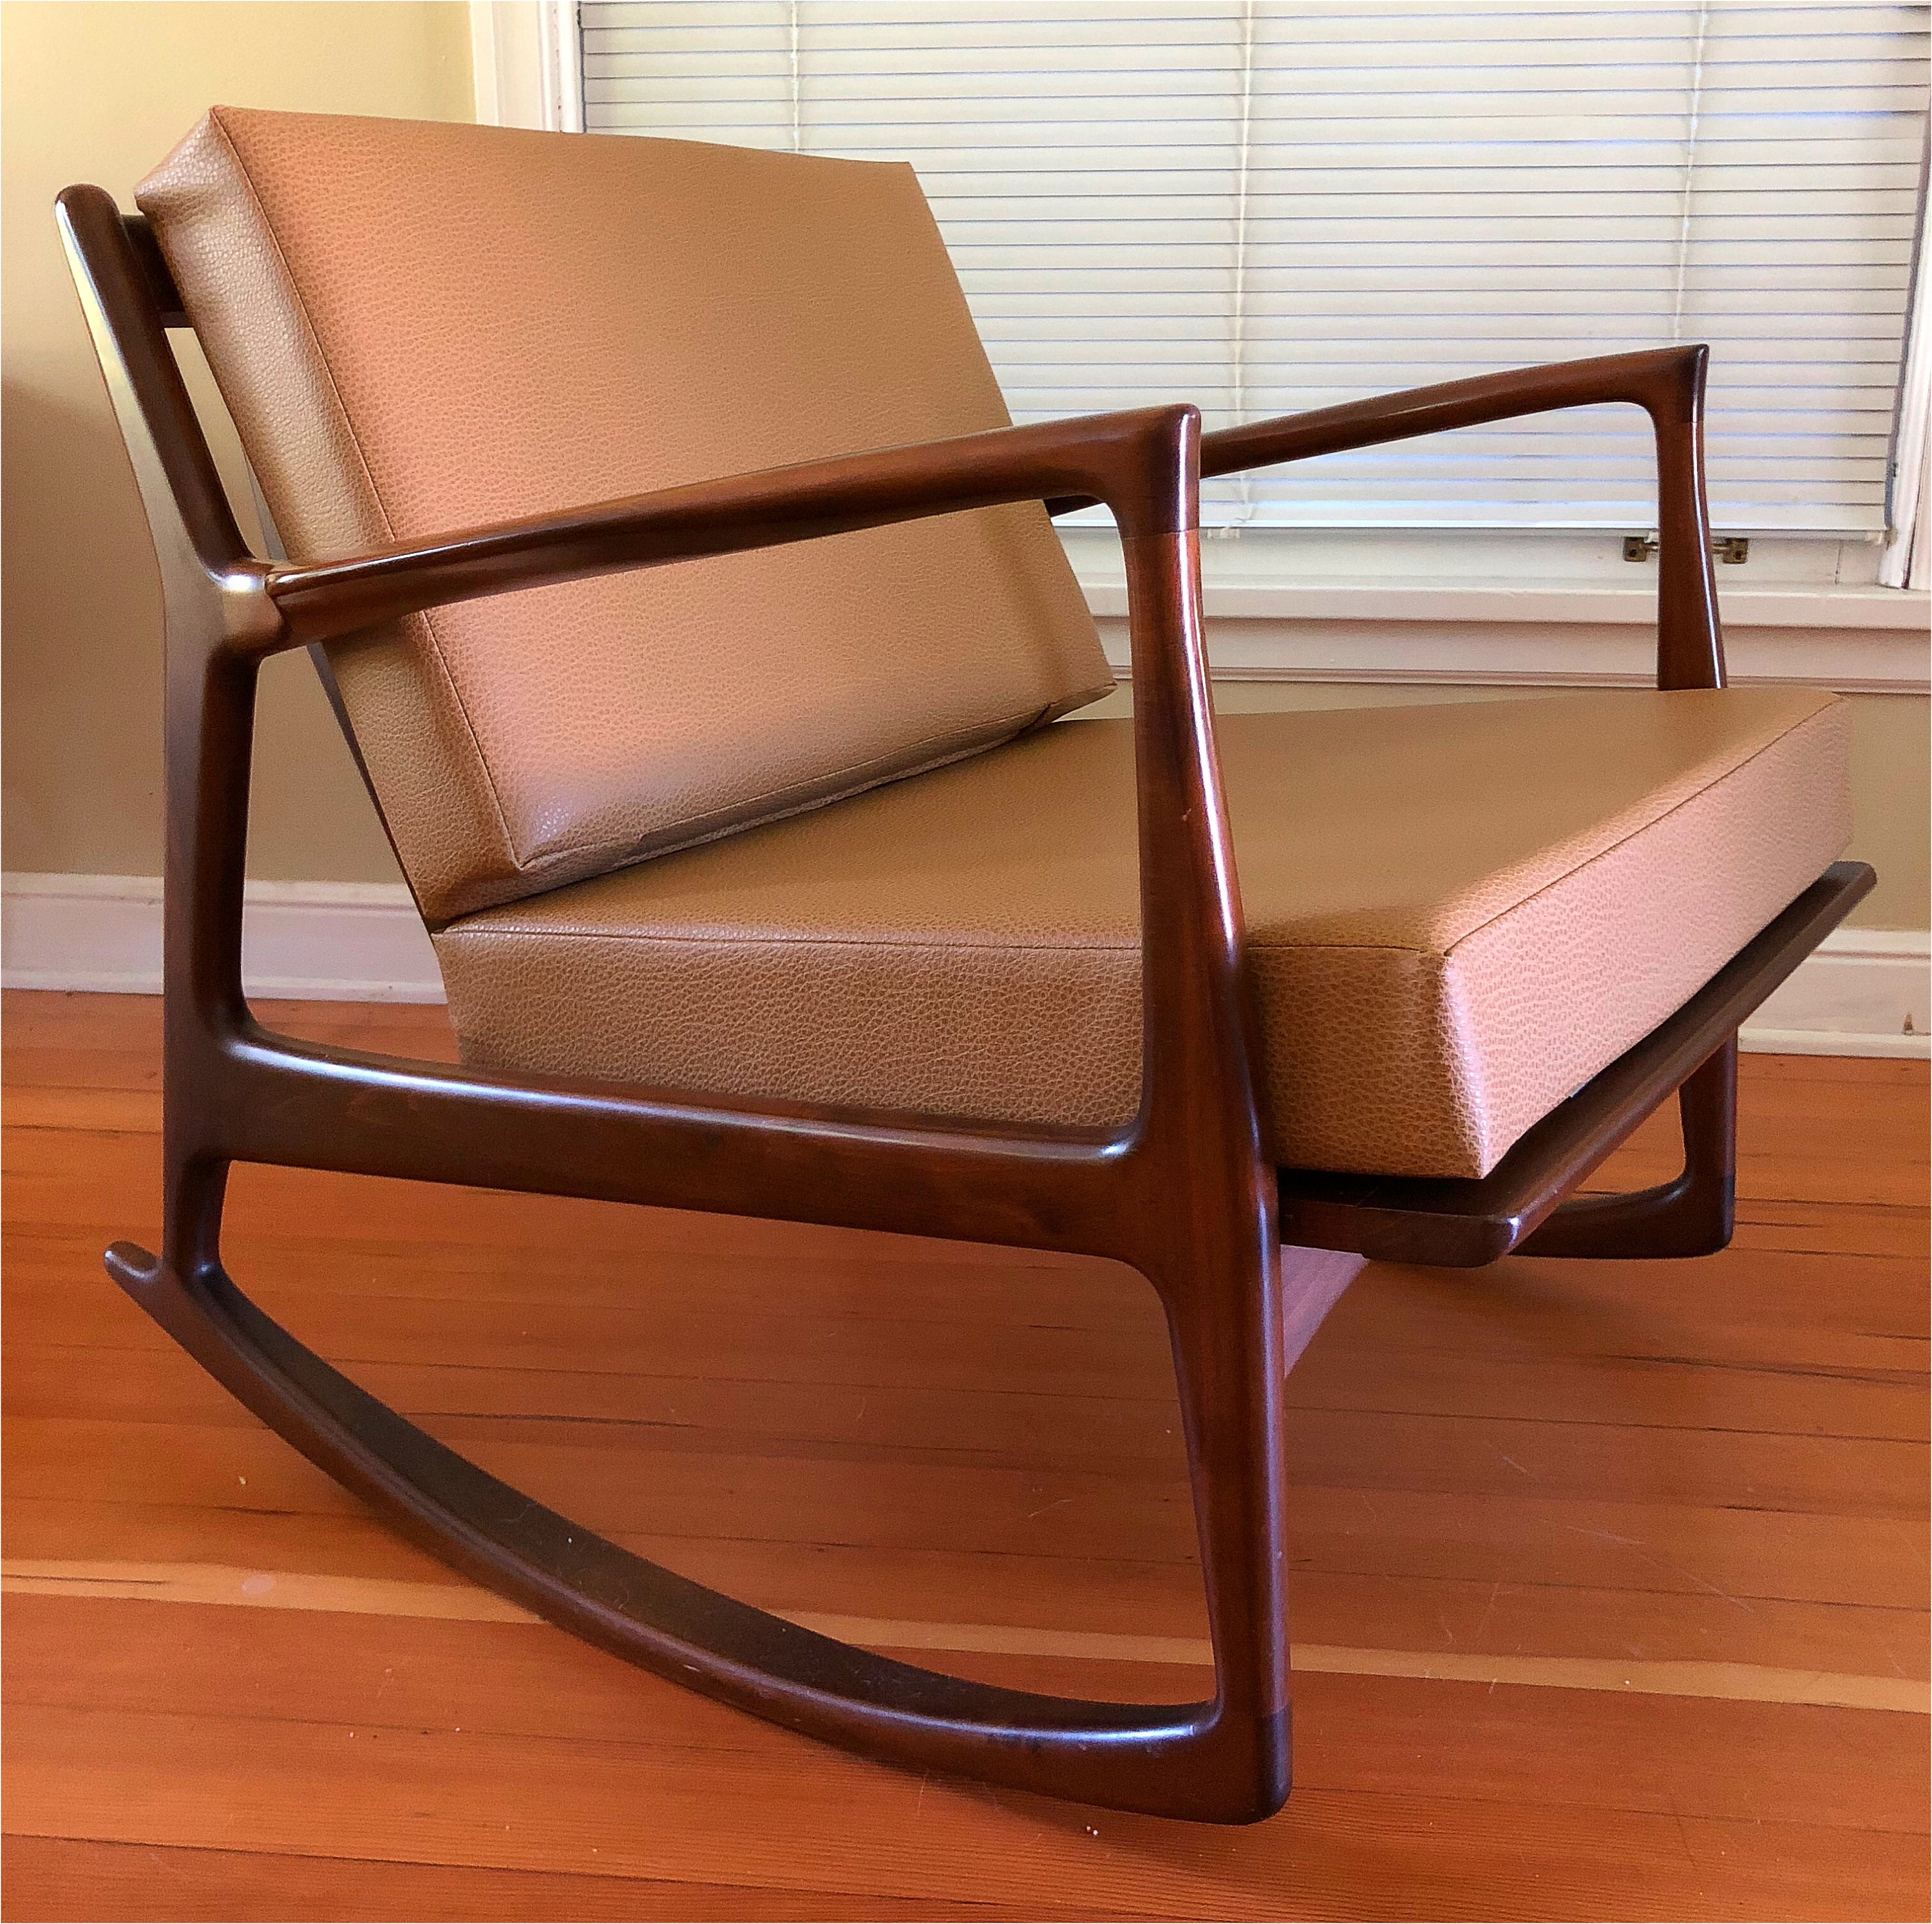 Selig Chair Maxwell Canyon Vinyl Cushions For Ib Kofod Larsen And Z Chairs Selig Danish Modern Mid Century Mcm Tan Brown